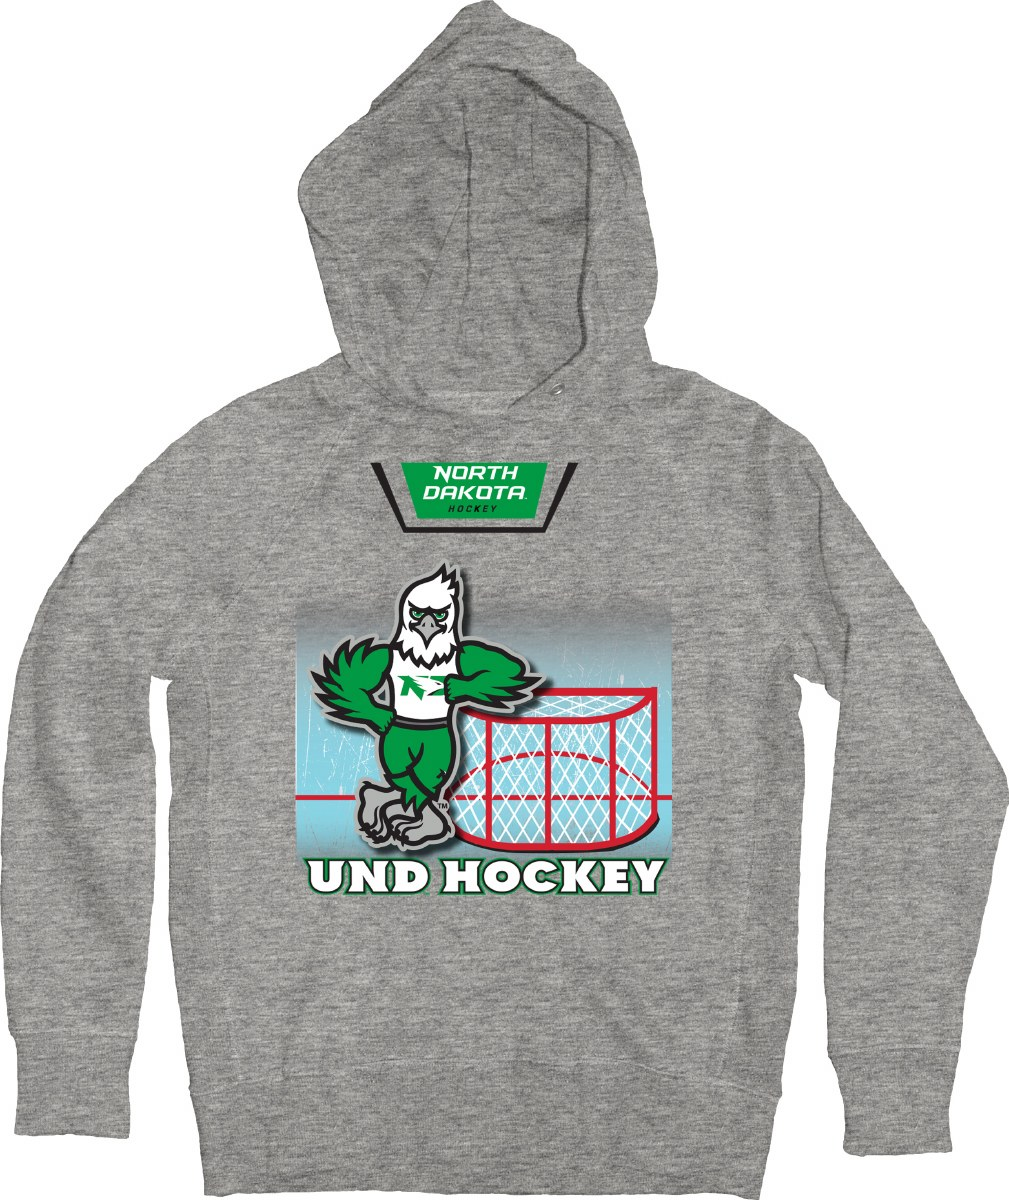 UNIVERSITY OF NORTH DAKOTA FIGHTING HAWKS MASCOT GOAL HOOD